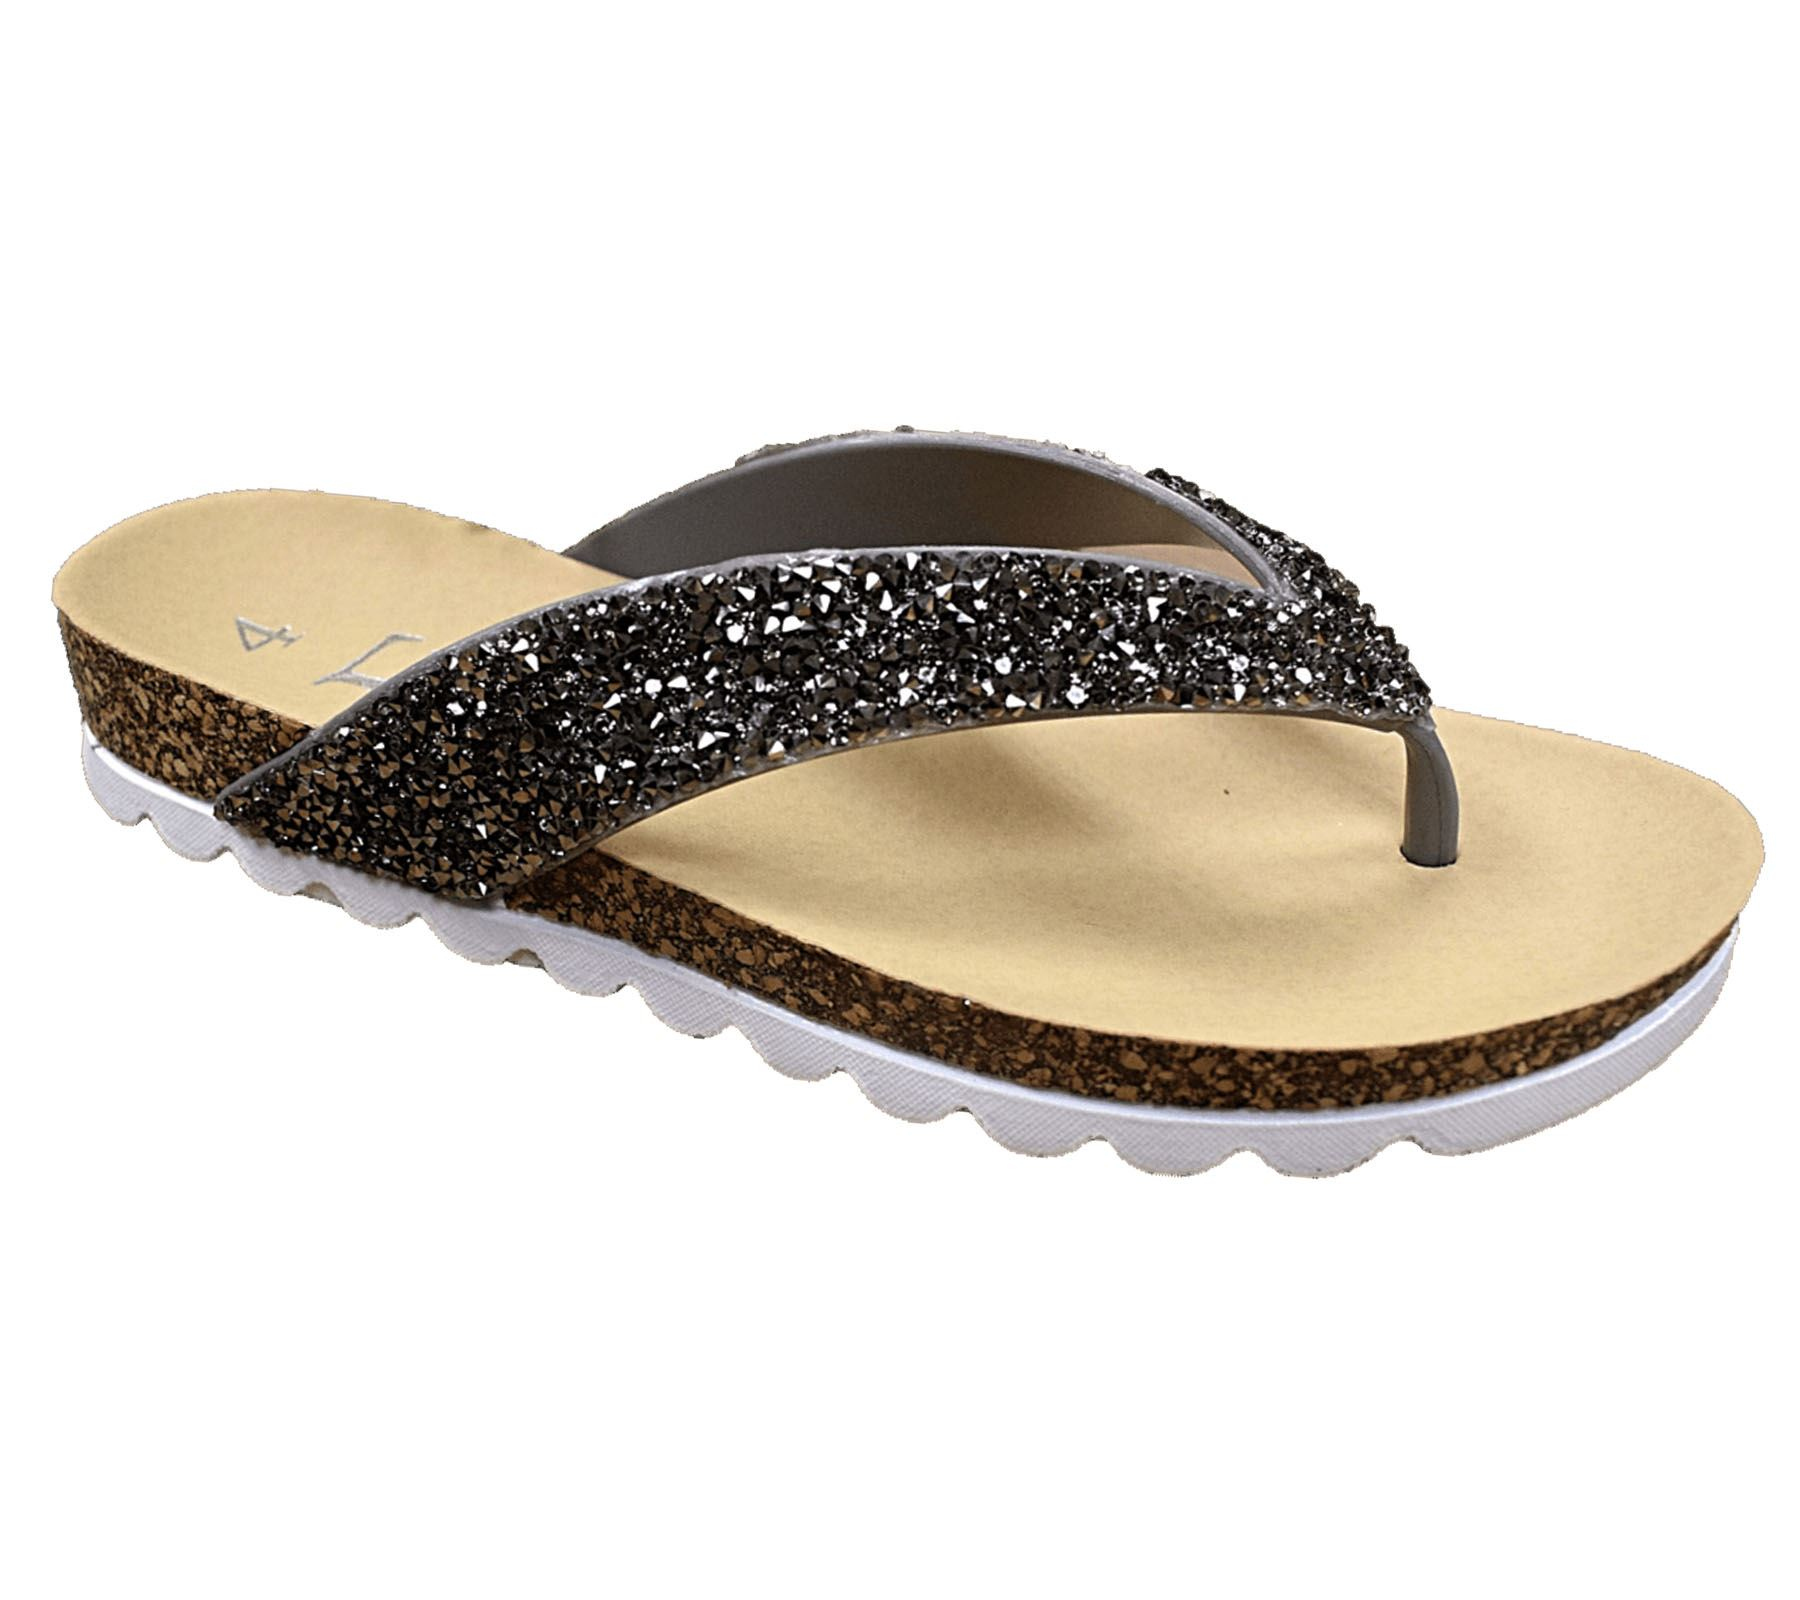 Womens-Casual-Toe-Post-Sparkly-Sandals-Ladies-Summer-Flip-Flops-Sliders-Mules thumbnail 4